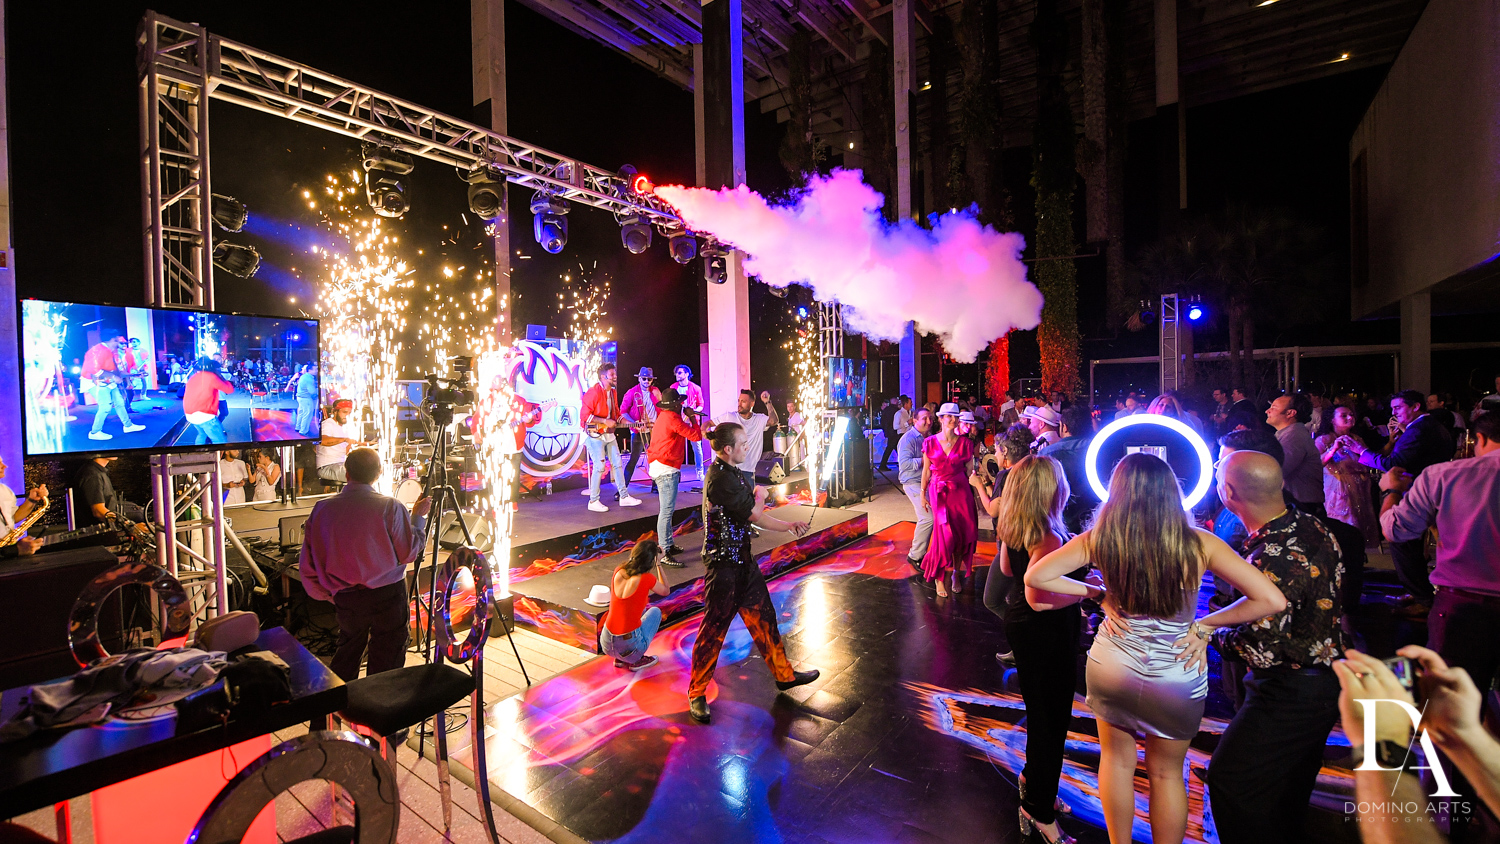 smoke effects at Fire & Ice B'Nai Mitzvah at Perez Art Museum Miami by Domino Arts Photography